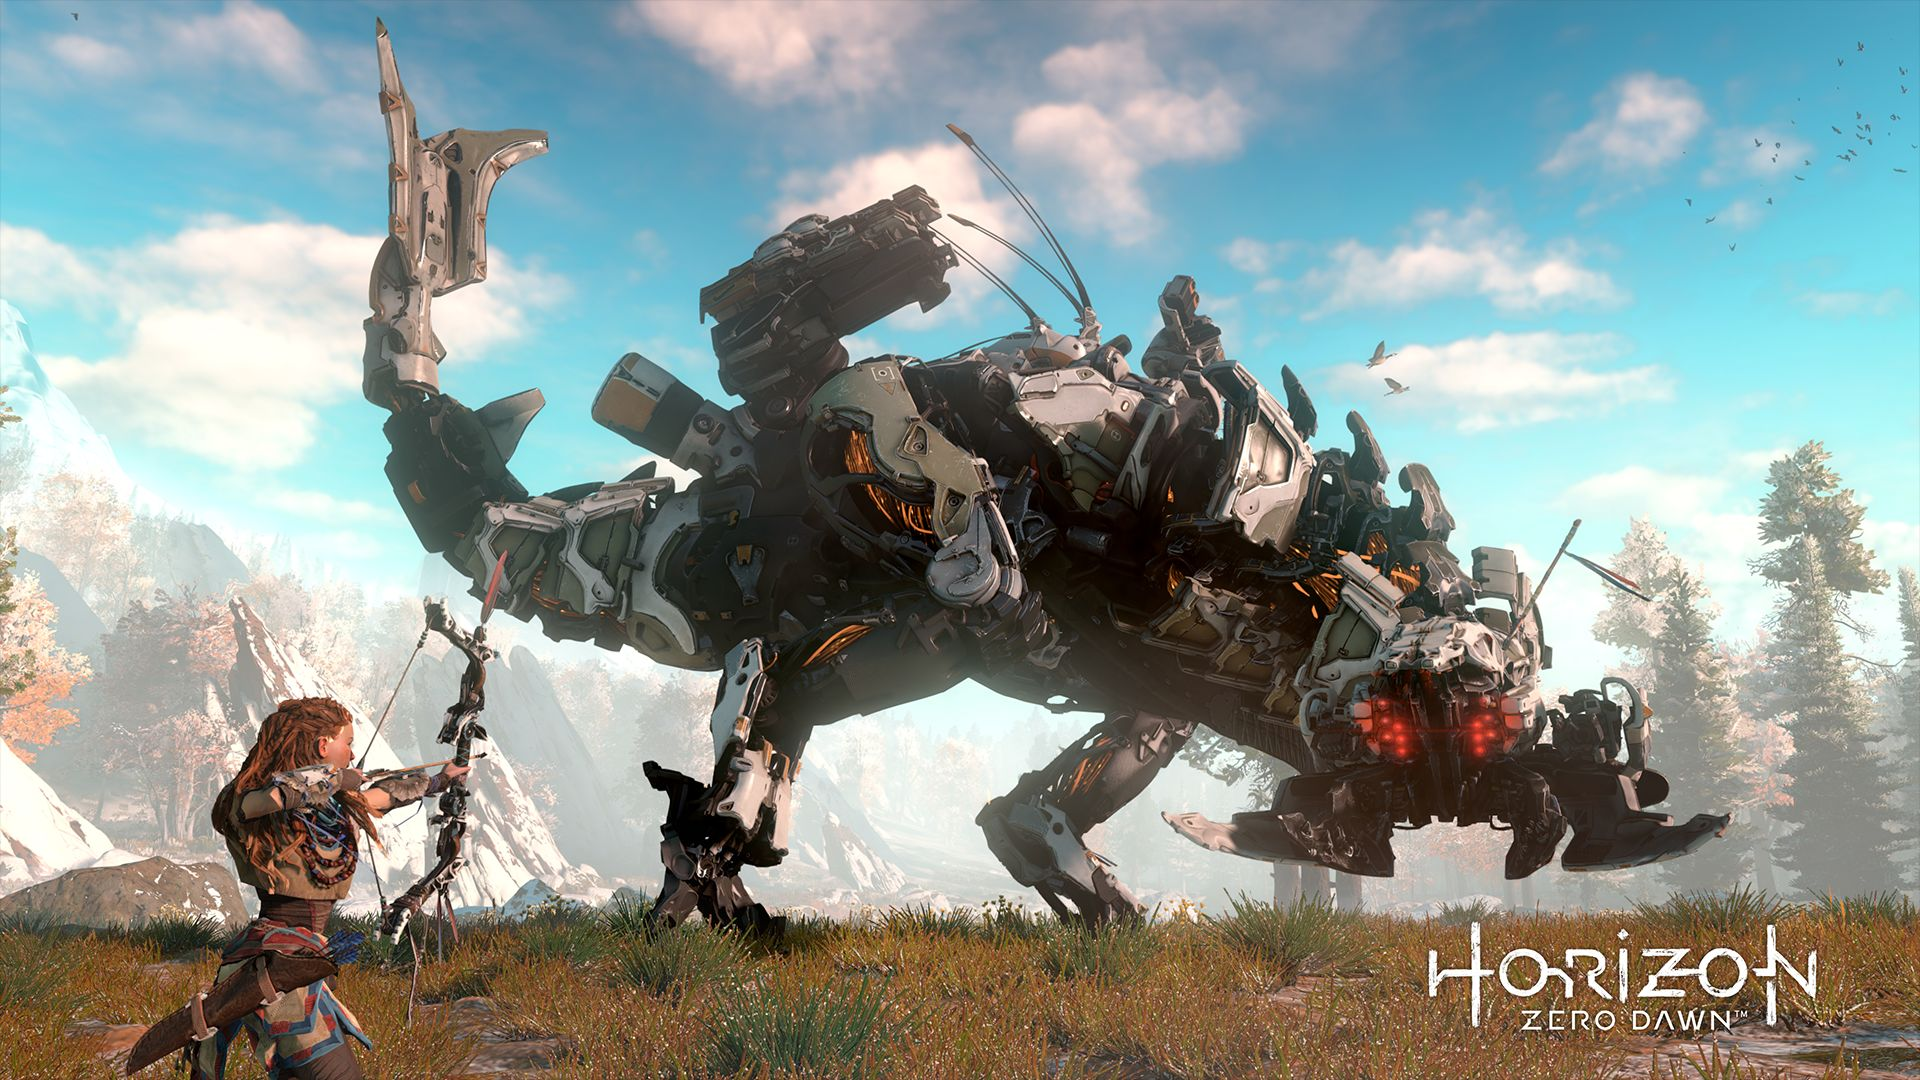 horizon zero dawn game wallpaper 48892